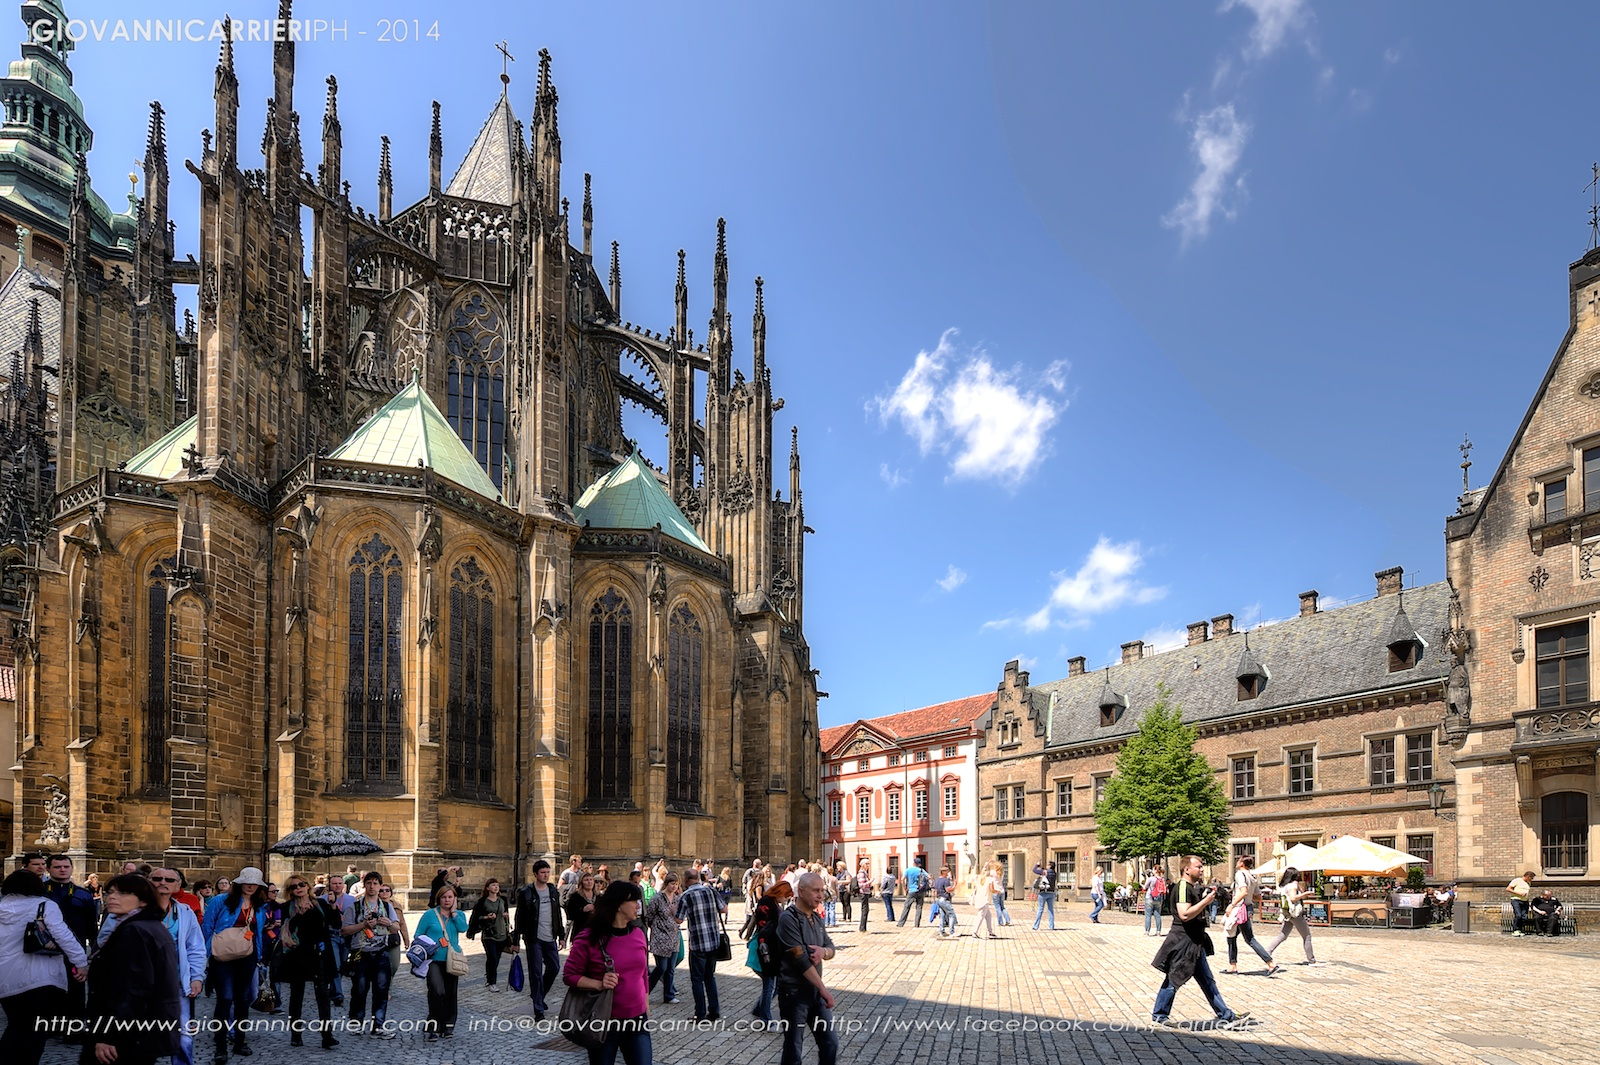 The St. Vitus Cathedral - Prague